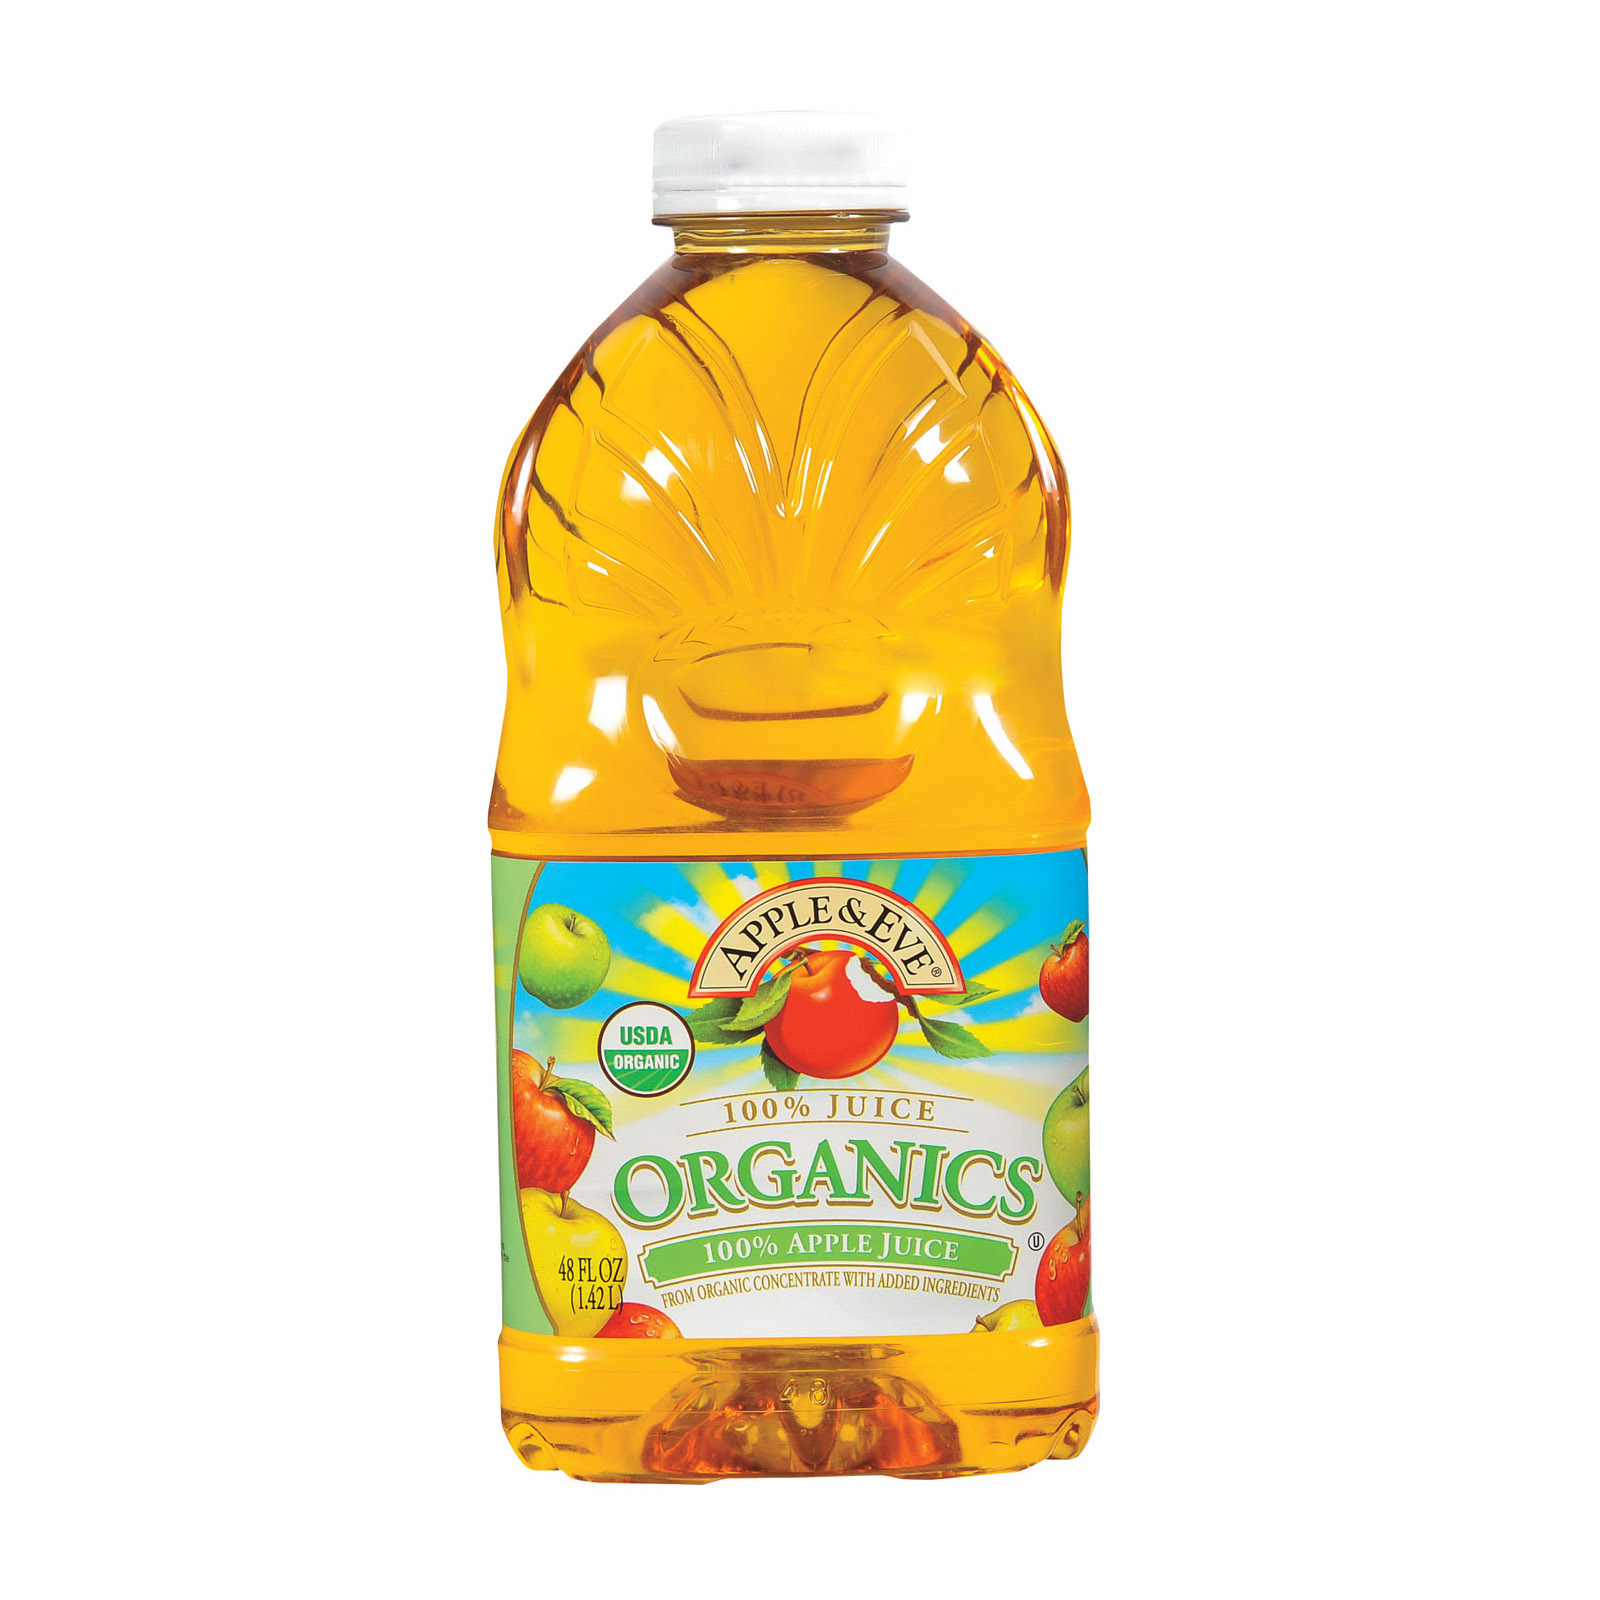 Apple and Eve Organic Juice Apple - Case of 8 - 48 fl oz.